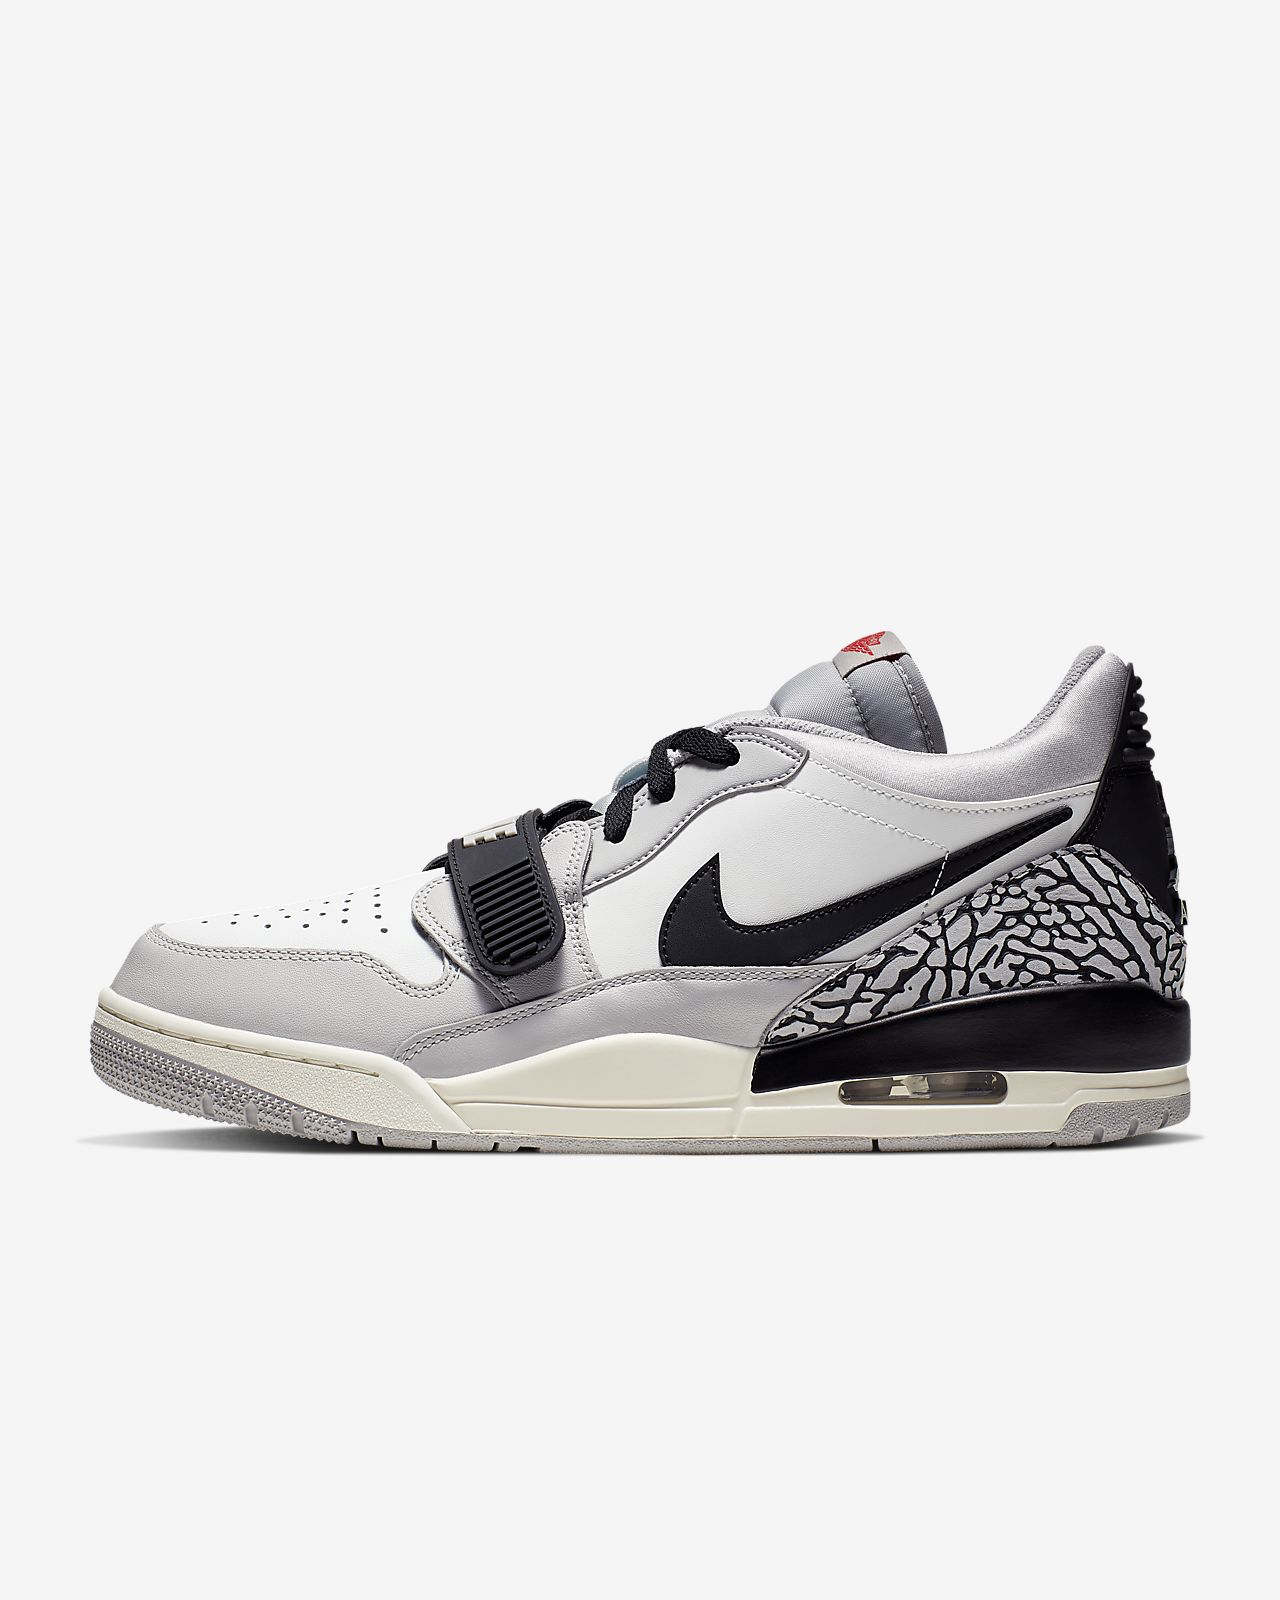 7cffc352863 Air Jordan Legacy 312 Low Men's Shoe. Nike.com IE